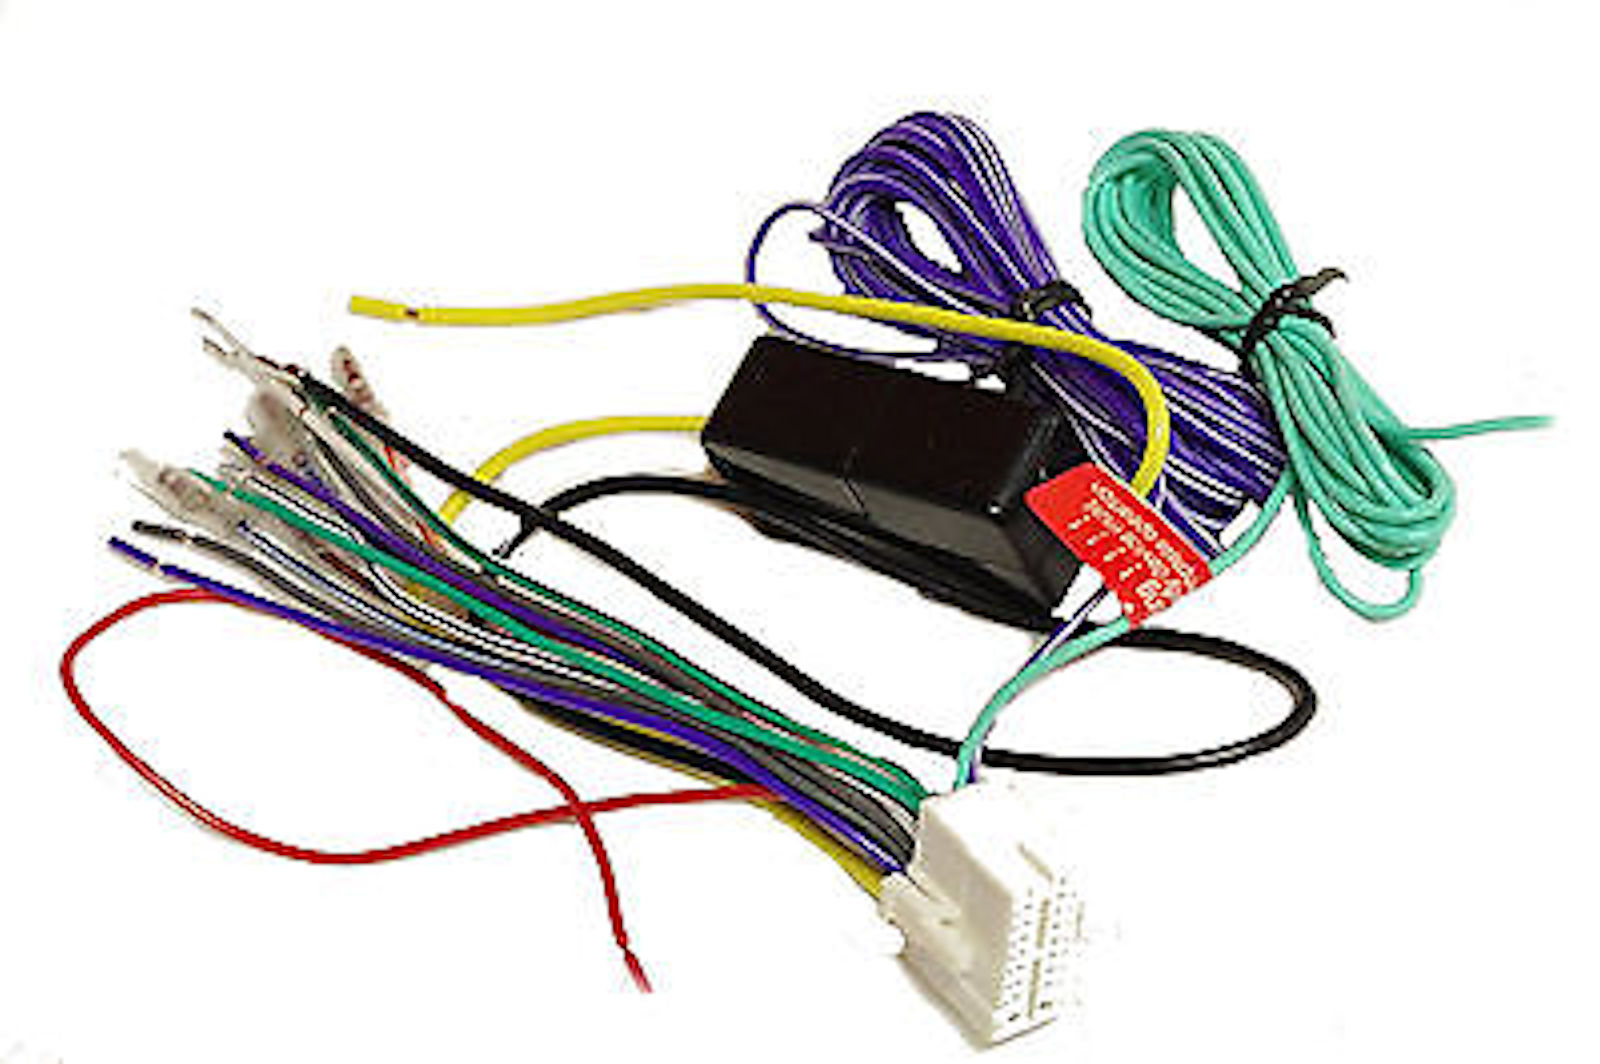 Clarion Wire Harness MAX685BT VZ709 VX409 VX404 VX405 NX404 ... on swing harness, pony harness, alpine stereo harness, battery harness, fall protection harness, safety harness, maxi-seal harness, engine harness, obd0 to obd1 conversion harness, electrical harness, dog harness, nakamichi harness, cable harness, radio harness, suspension harness, pet harness, oxygen sensor extension harness, amp bypass harness,